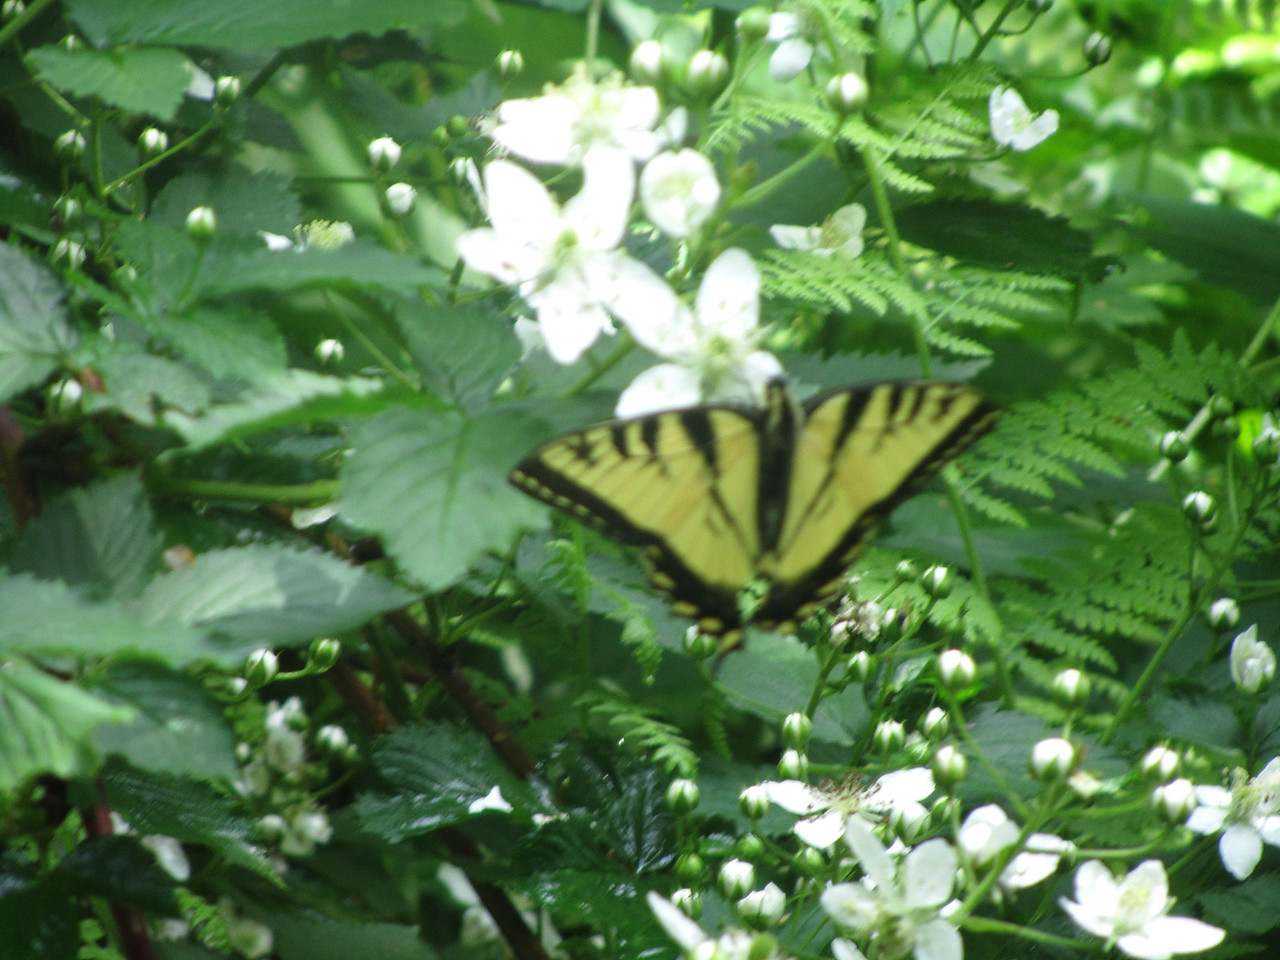 Eastern Tiger Swallowtail refusing to stay still for the photo op.